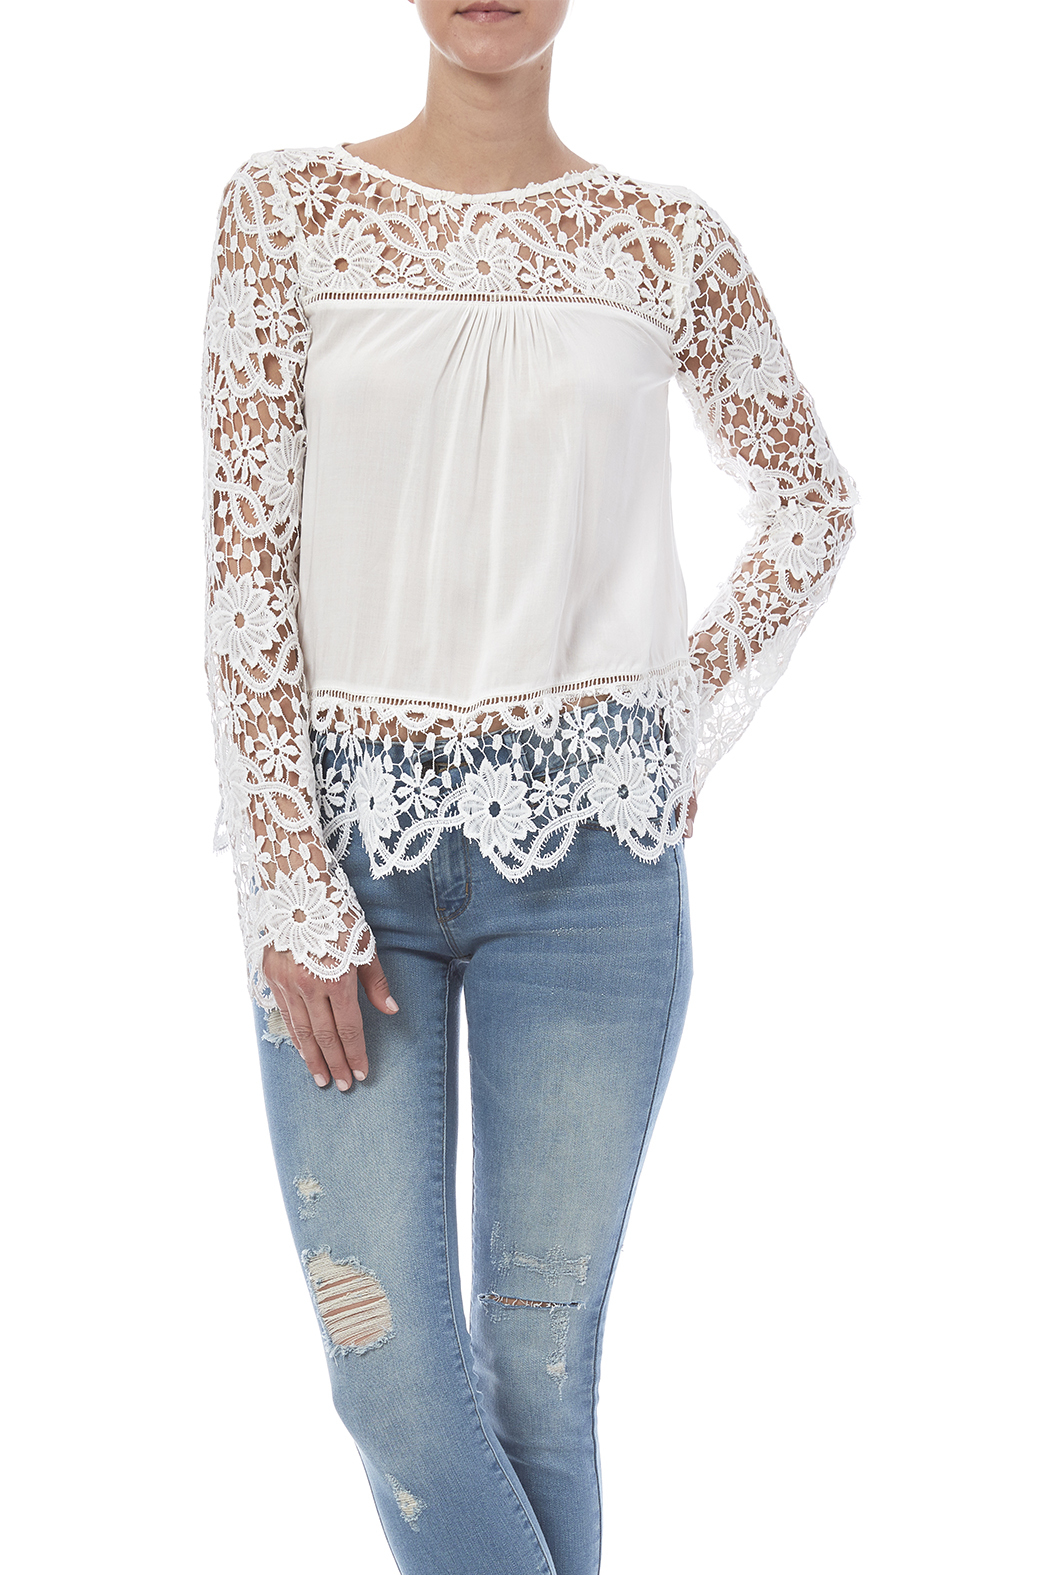 fashion on earth Romance Blouse - Front Cropped Image